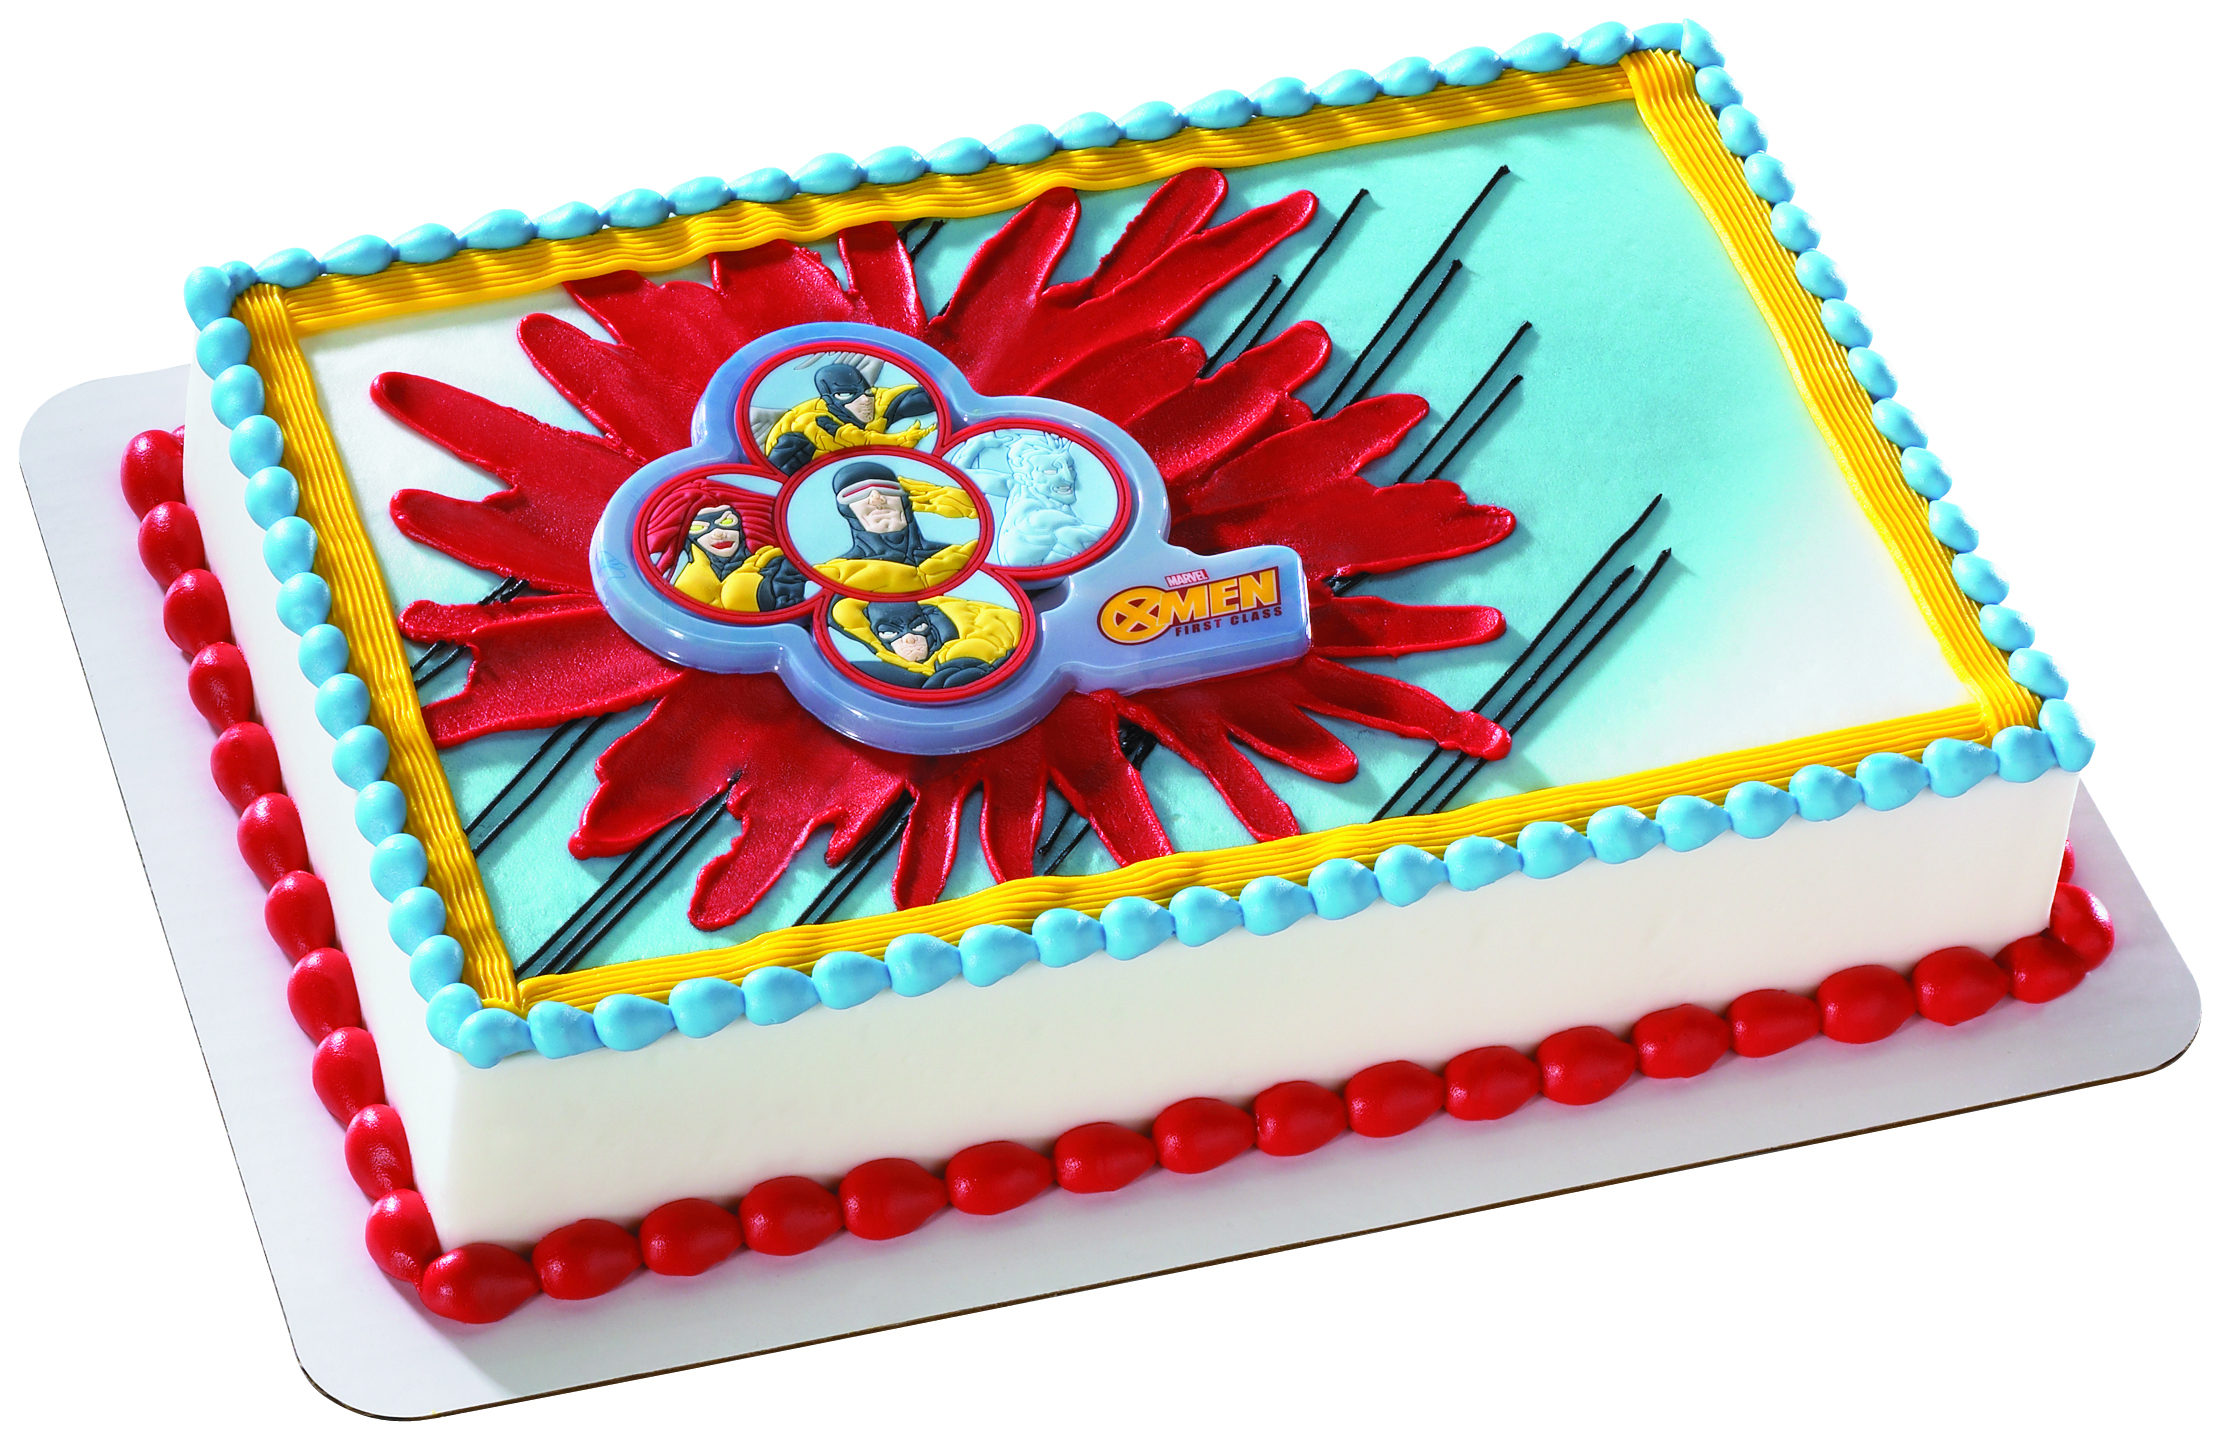 Decopac S New Cake Ideas and Designs